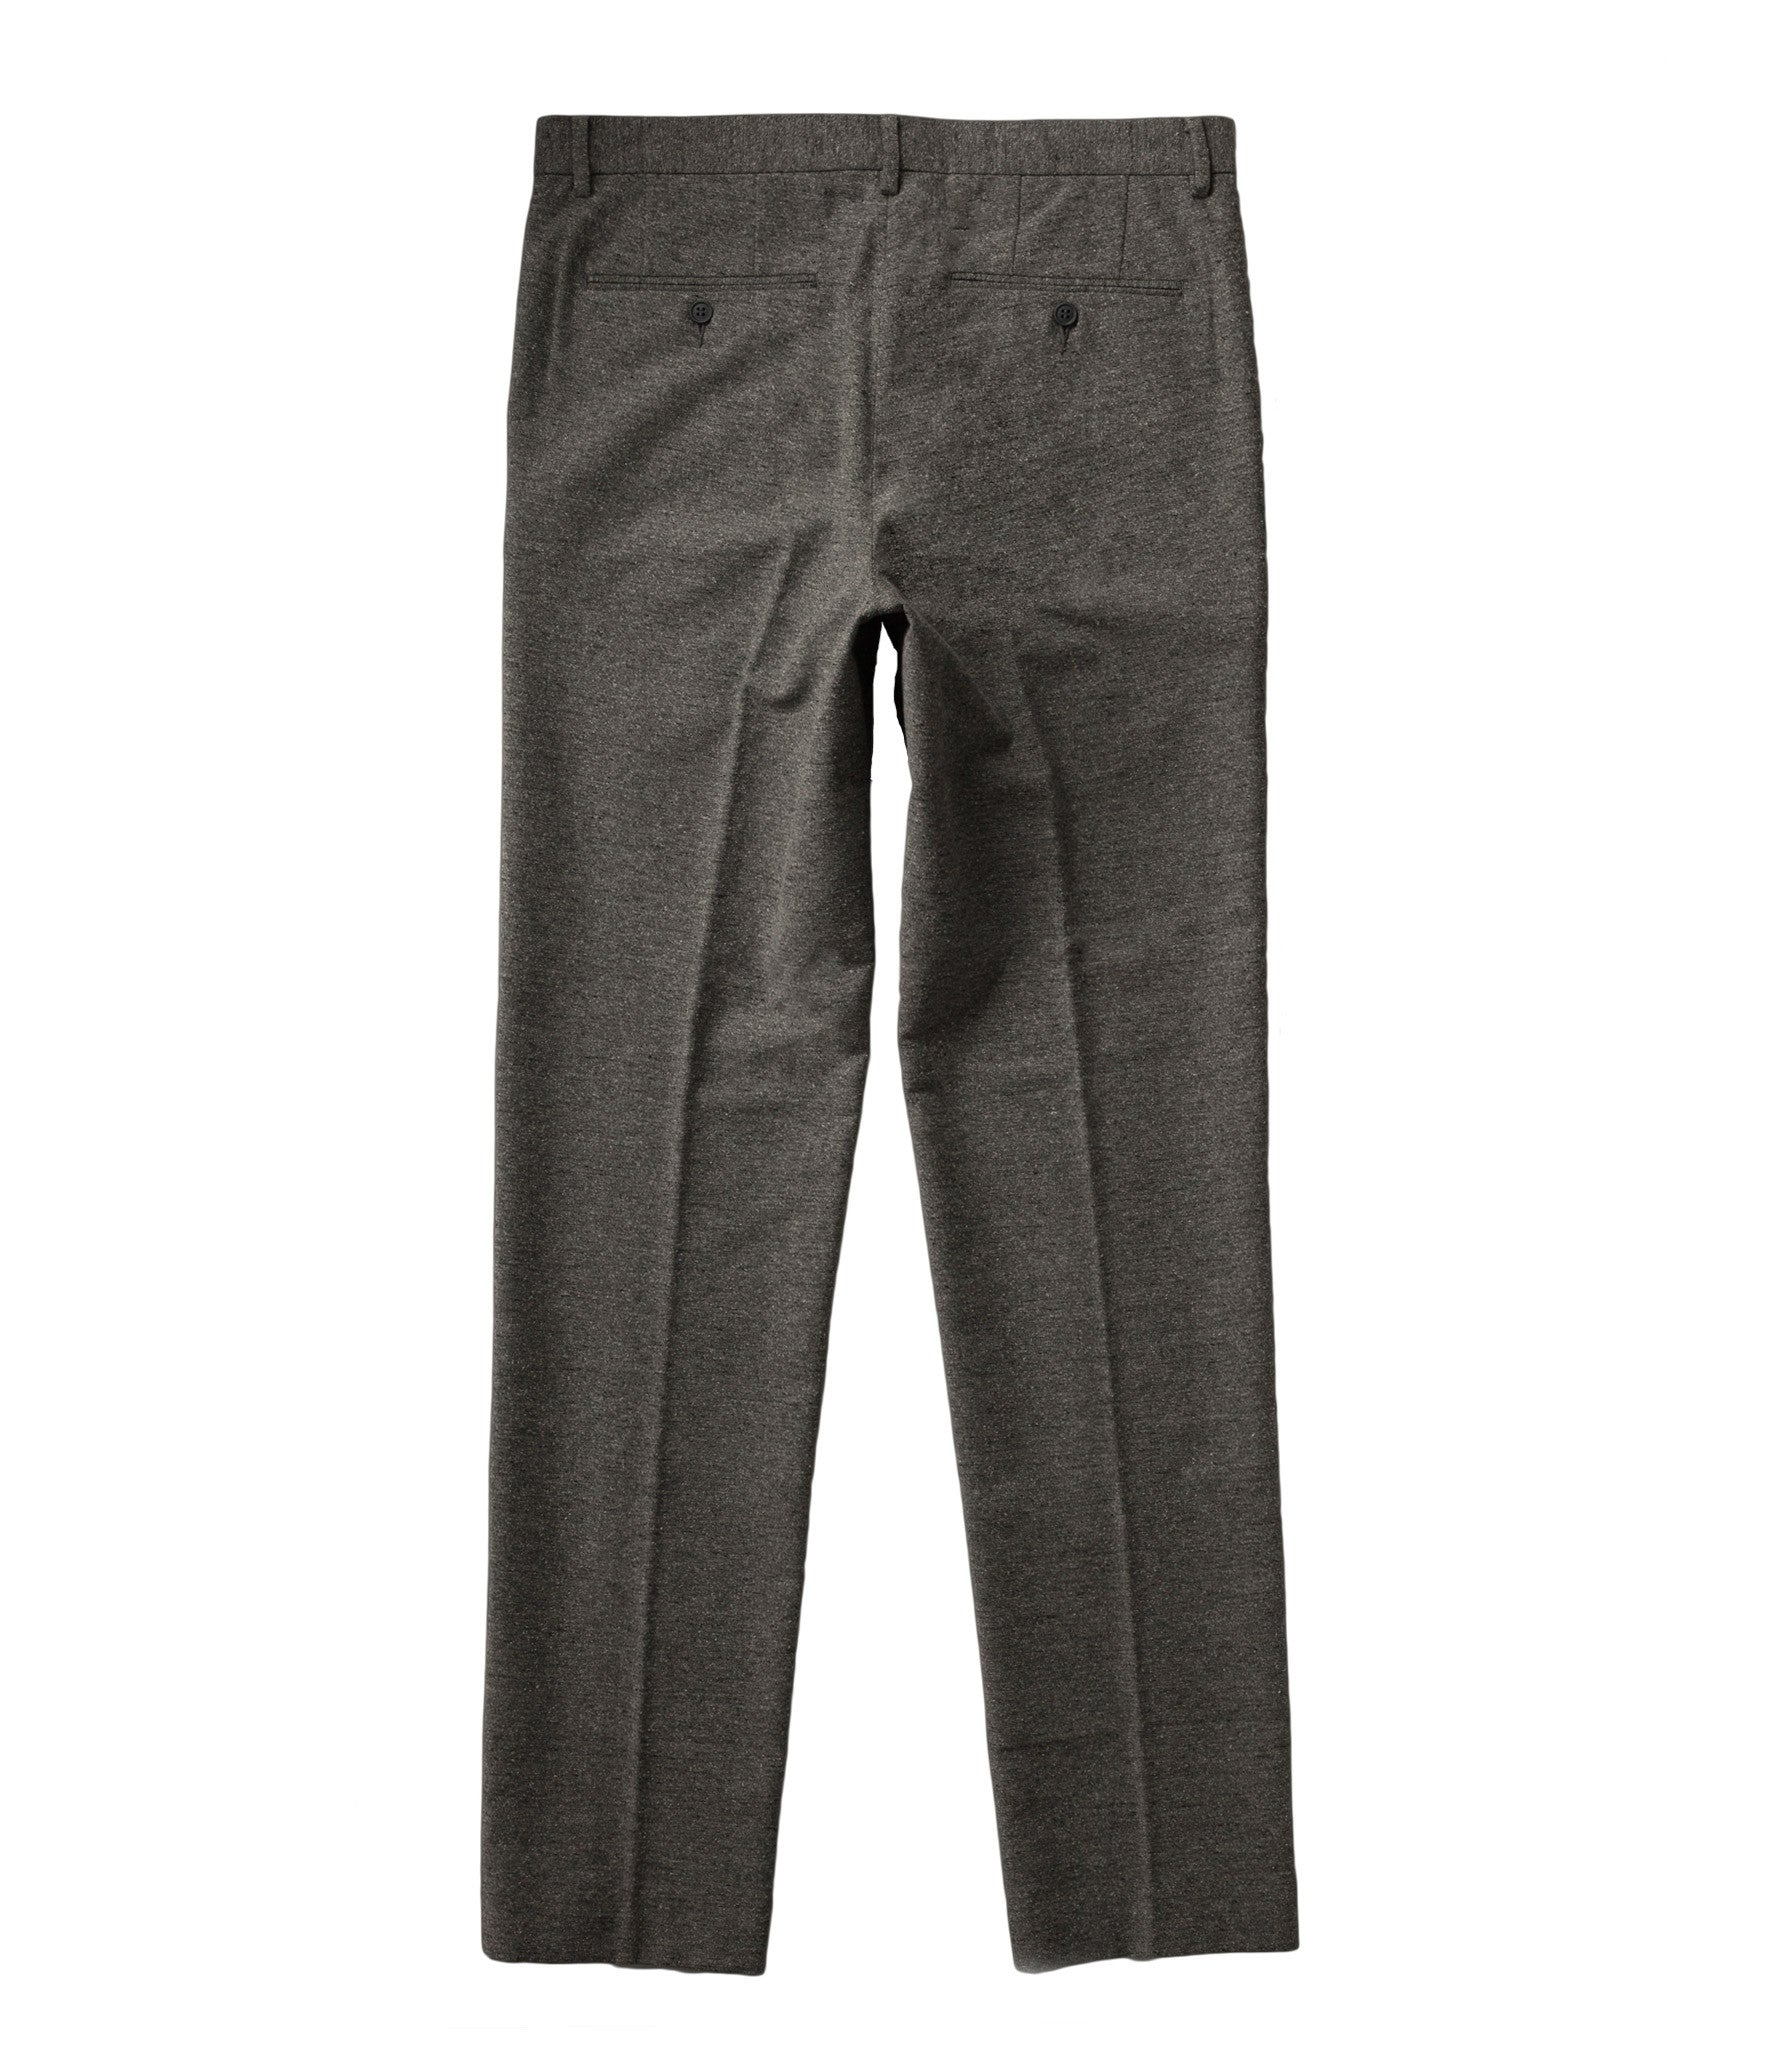 Japanese tweed pant in Grey